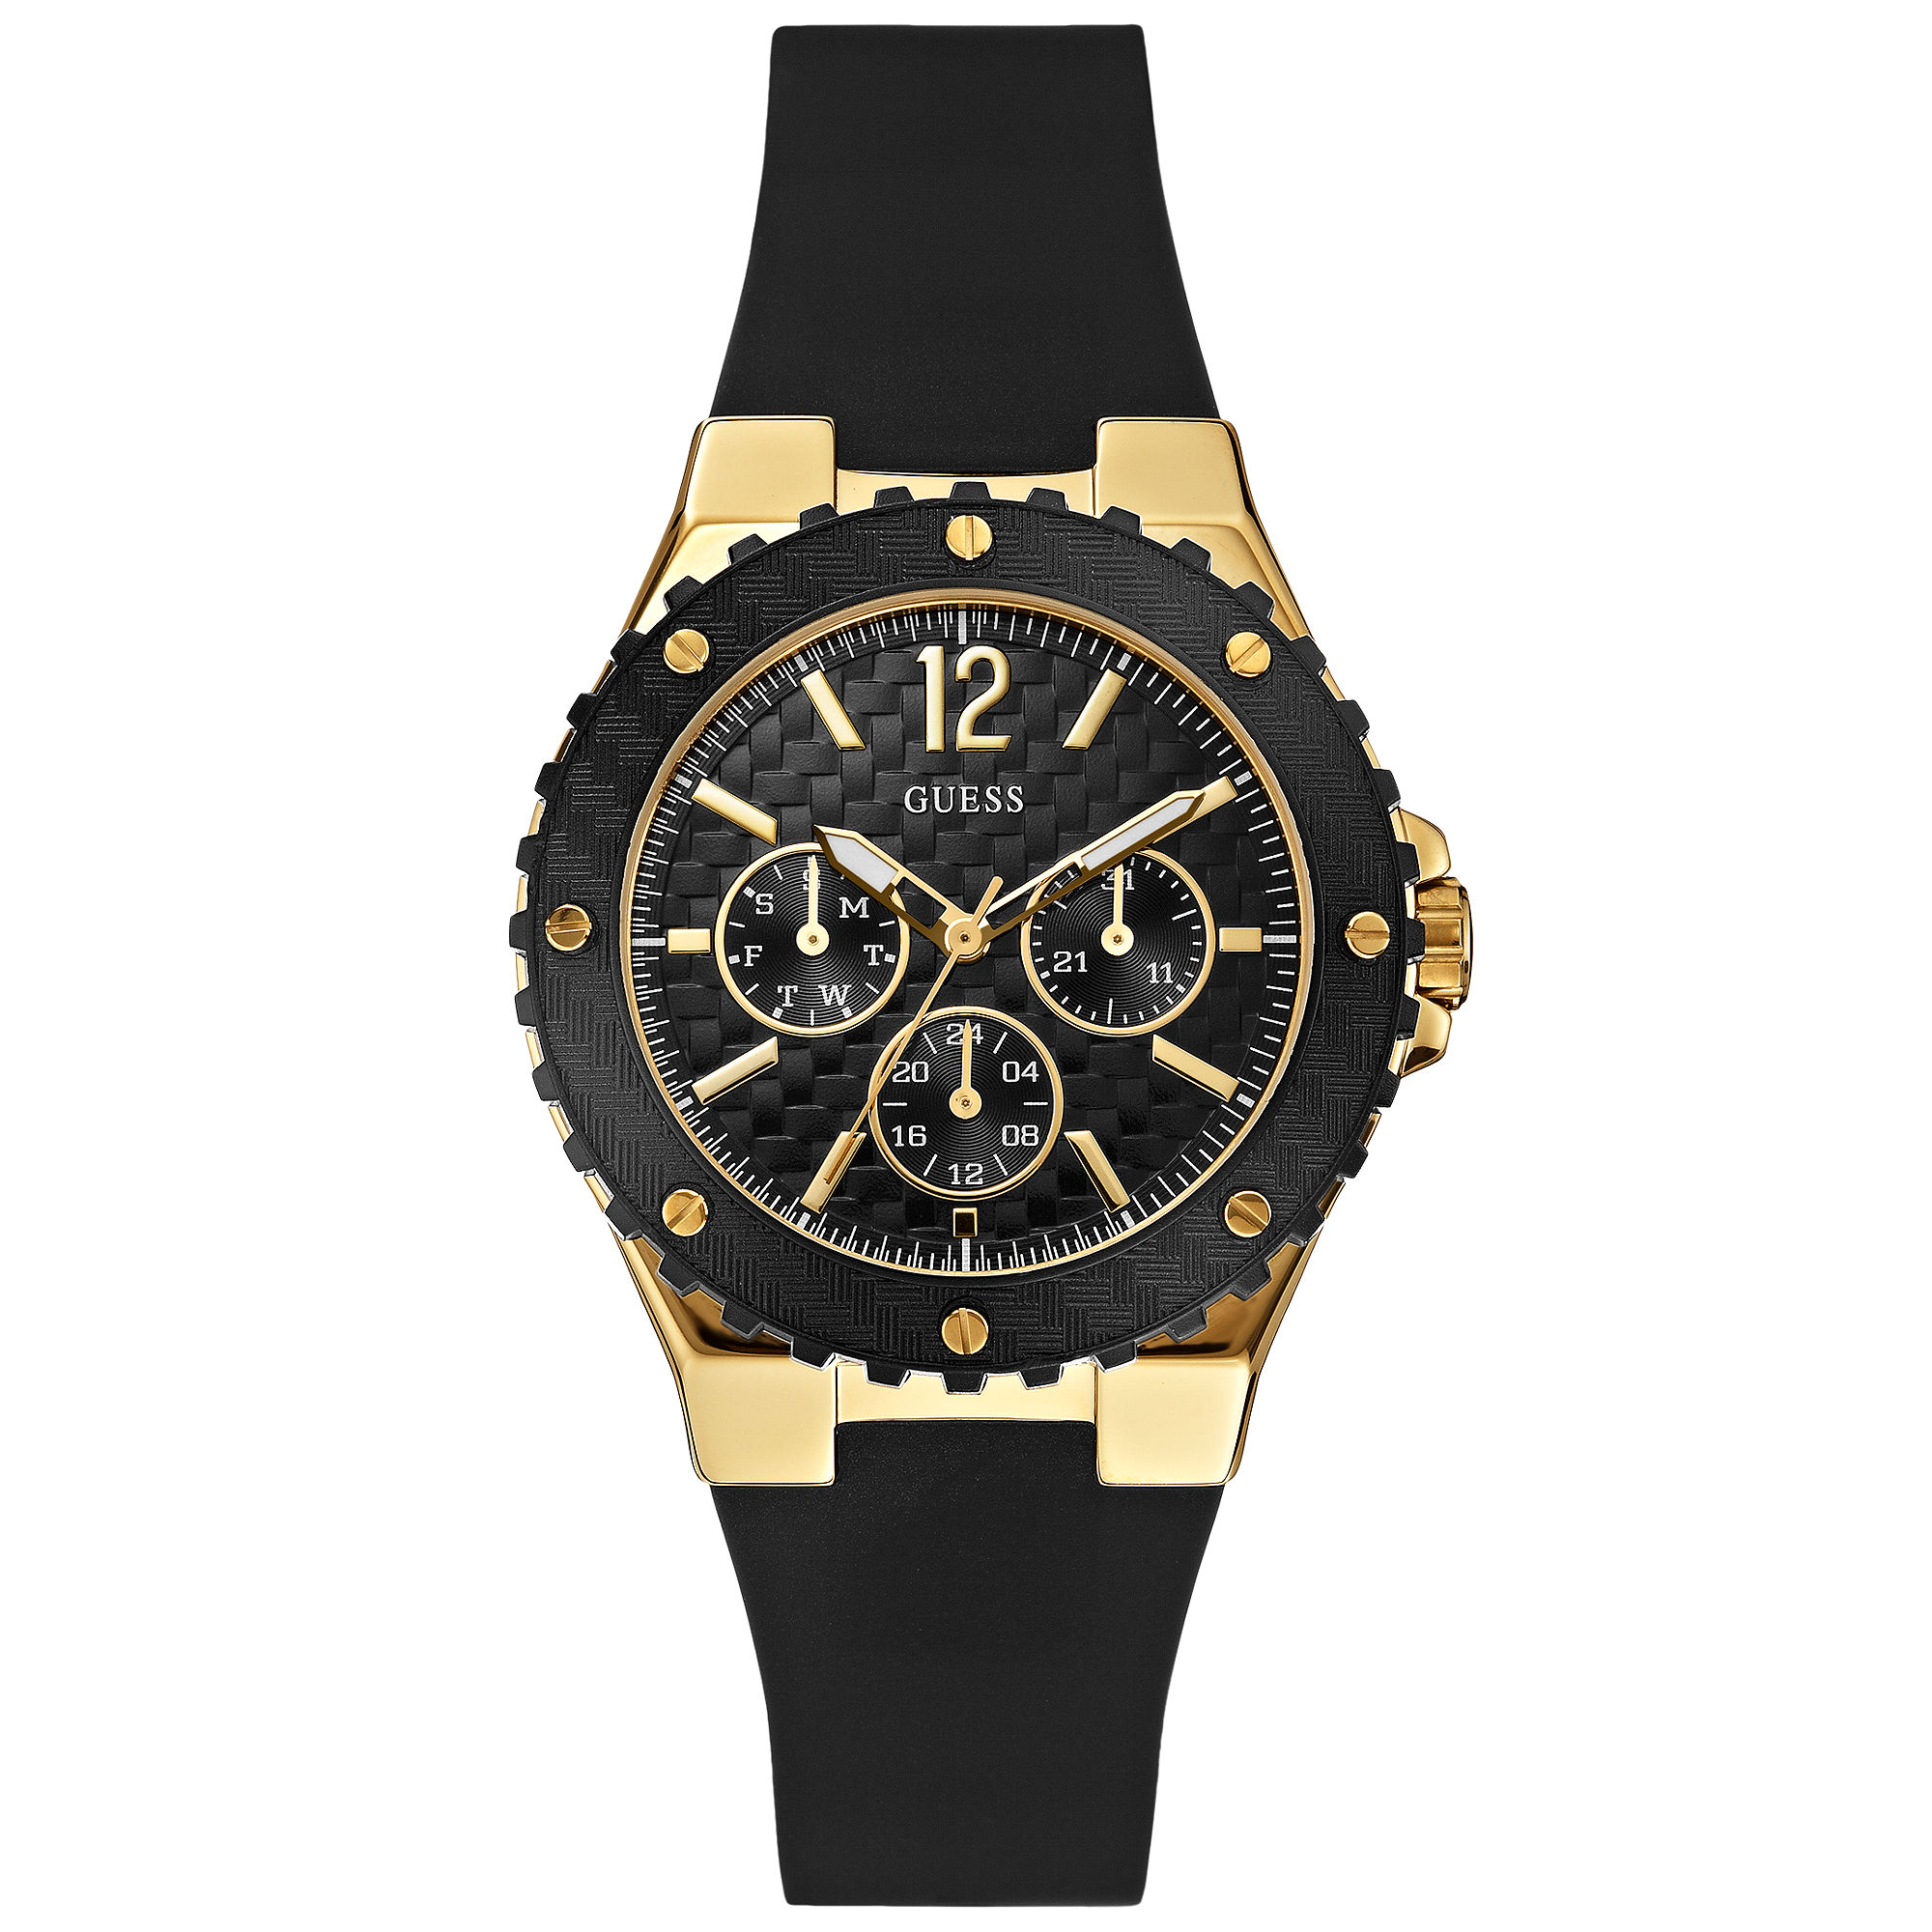 d5eb8c8997a5 ... Strap Watch  Black Rubber GUESS Watches  Guess Watches for Women  Lyst   Guess ...